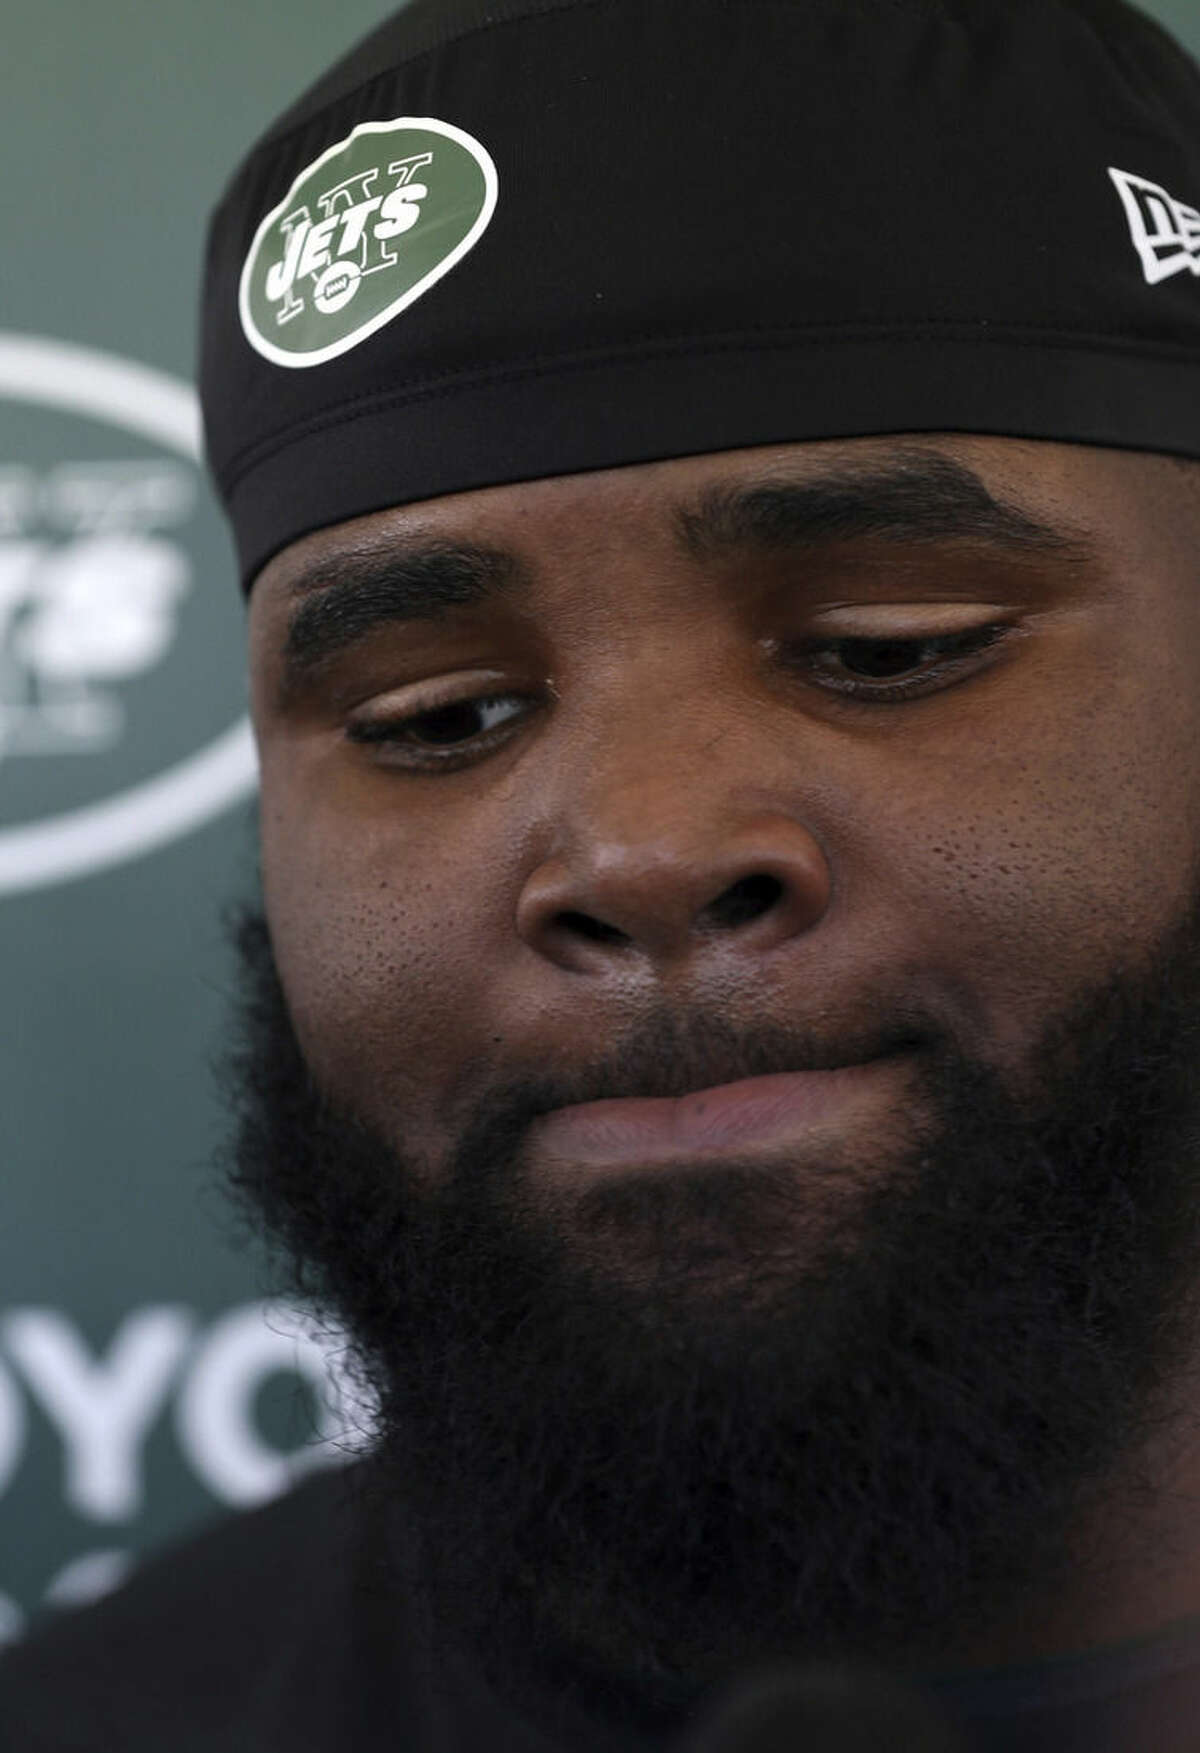 New York Jets defensive end Sheldon Richardson reacts while talking with reporters at NFL football training camp in Florham Park, N.J., Friday, July 31, 2015. (AP Photo/Adam Hunger)